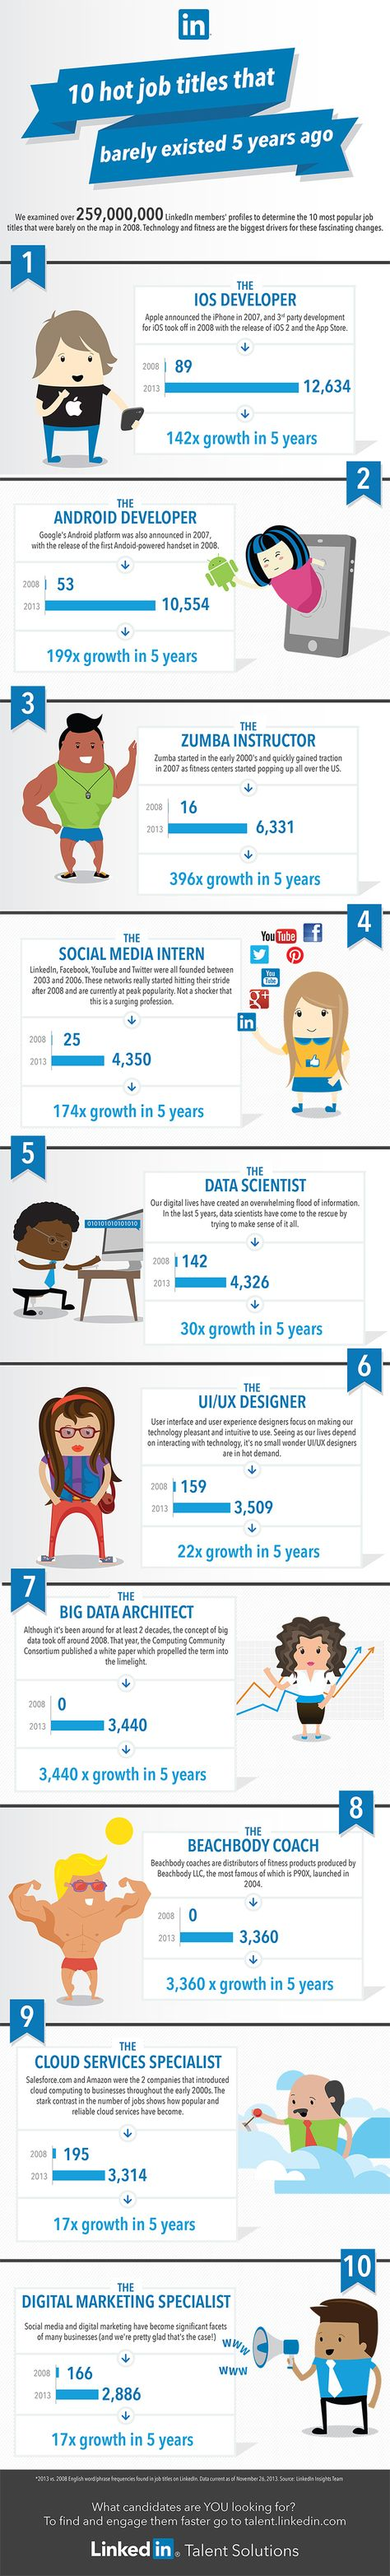 Most Popular Jobs Which Didn't Exist 5 Years Ago [INFOGRAPHIC] on http://theundercoverrecruiter.com